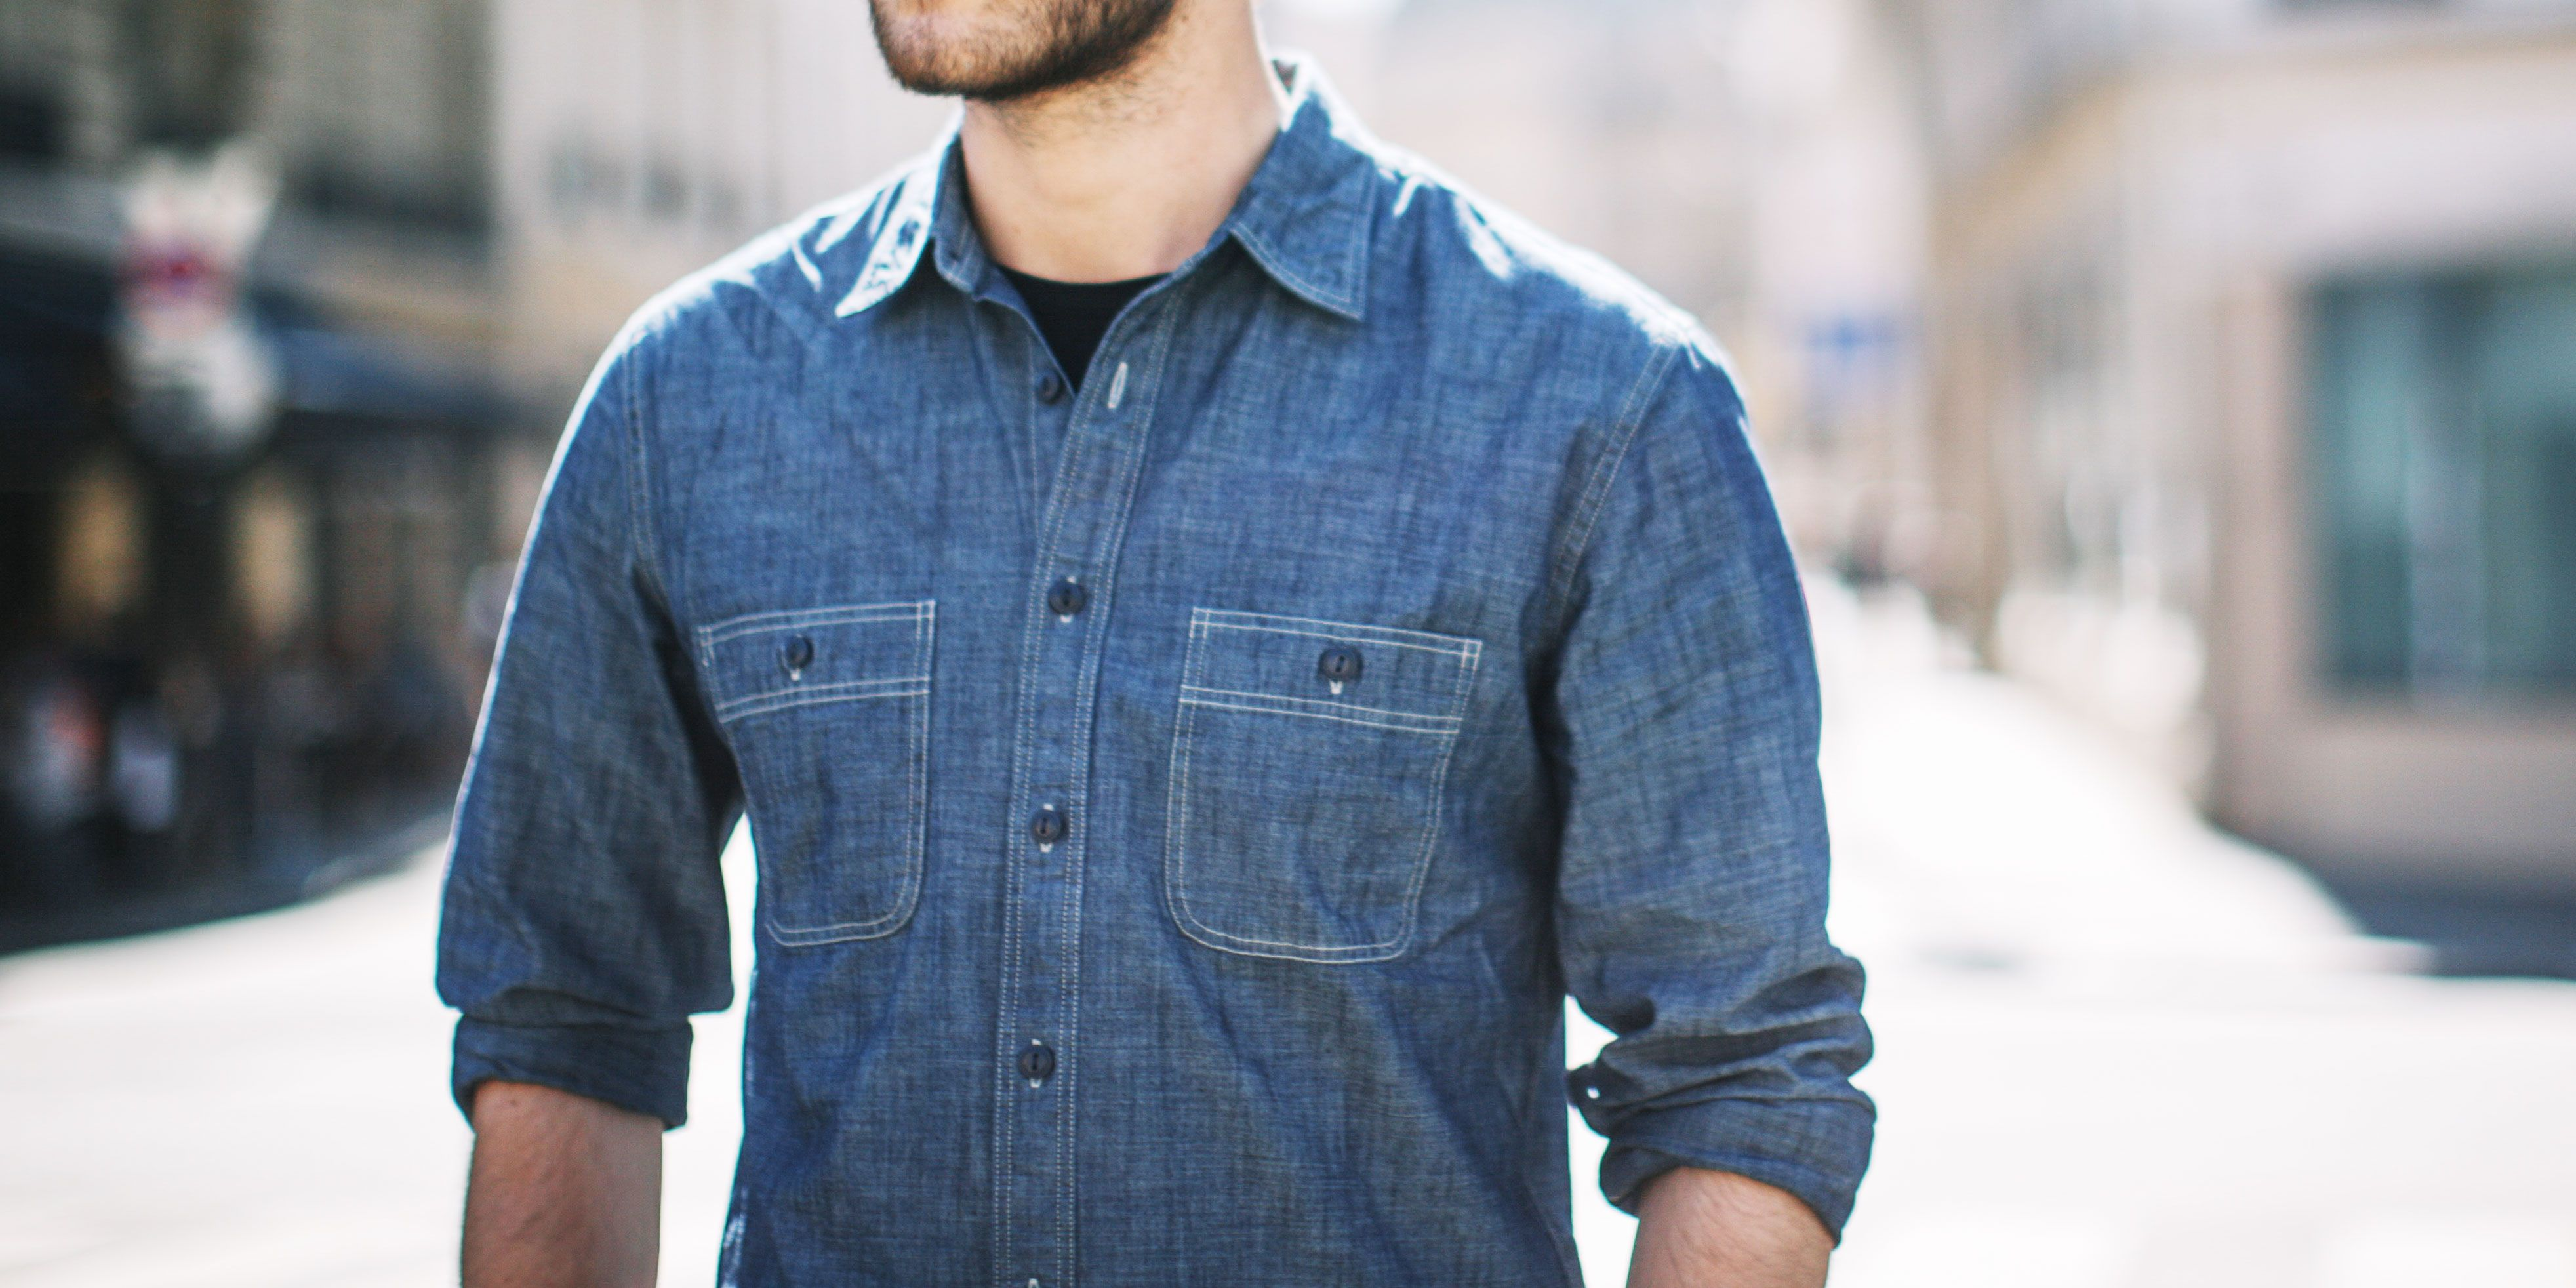 17e8406f6 14 Chambray Shirts to Wear this Spring - Best Shirts for Men